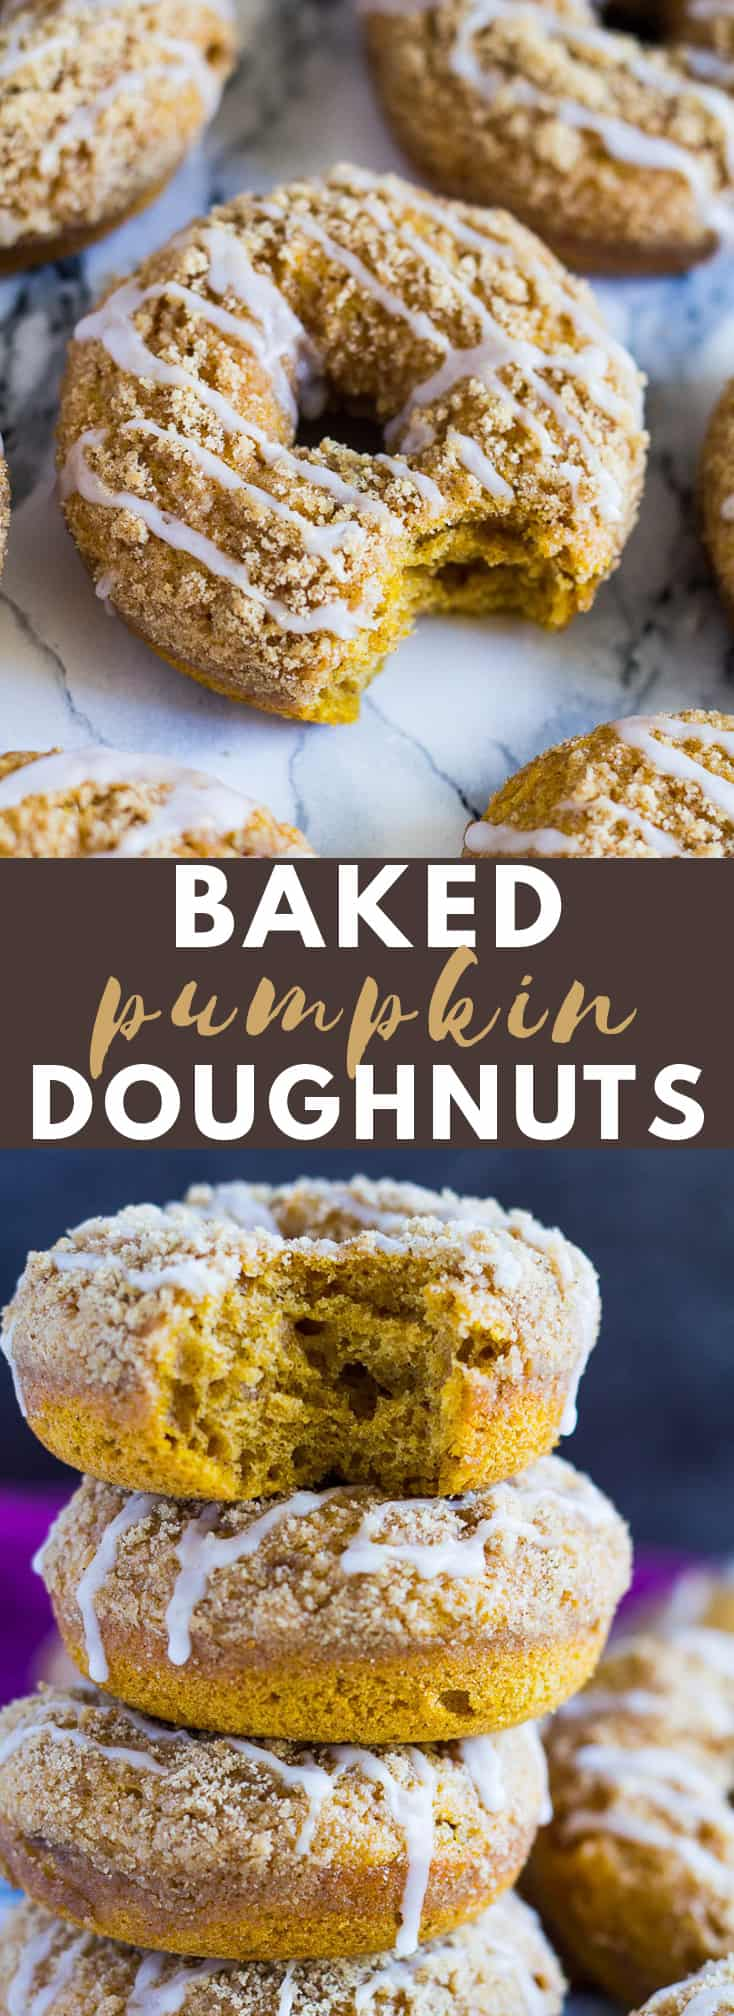 Baked Pumpkin Streusel Doughnuts - Deliciously moist and fluffy spiced pumpkin doughnuts that are BAKED, not fried, topped with a crunchy cinnamon streusel, and drizzled with a sweet glaze! #bakeddonuts #pumpkindonuts #pumpkinrecipes